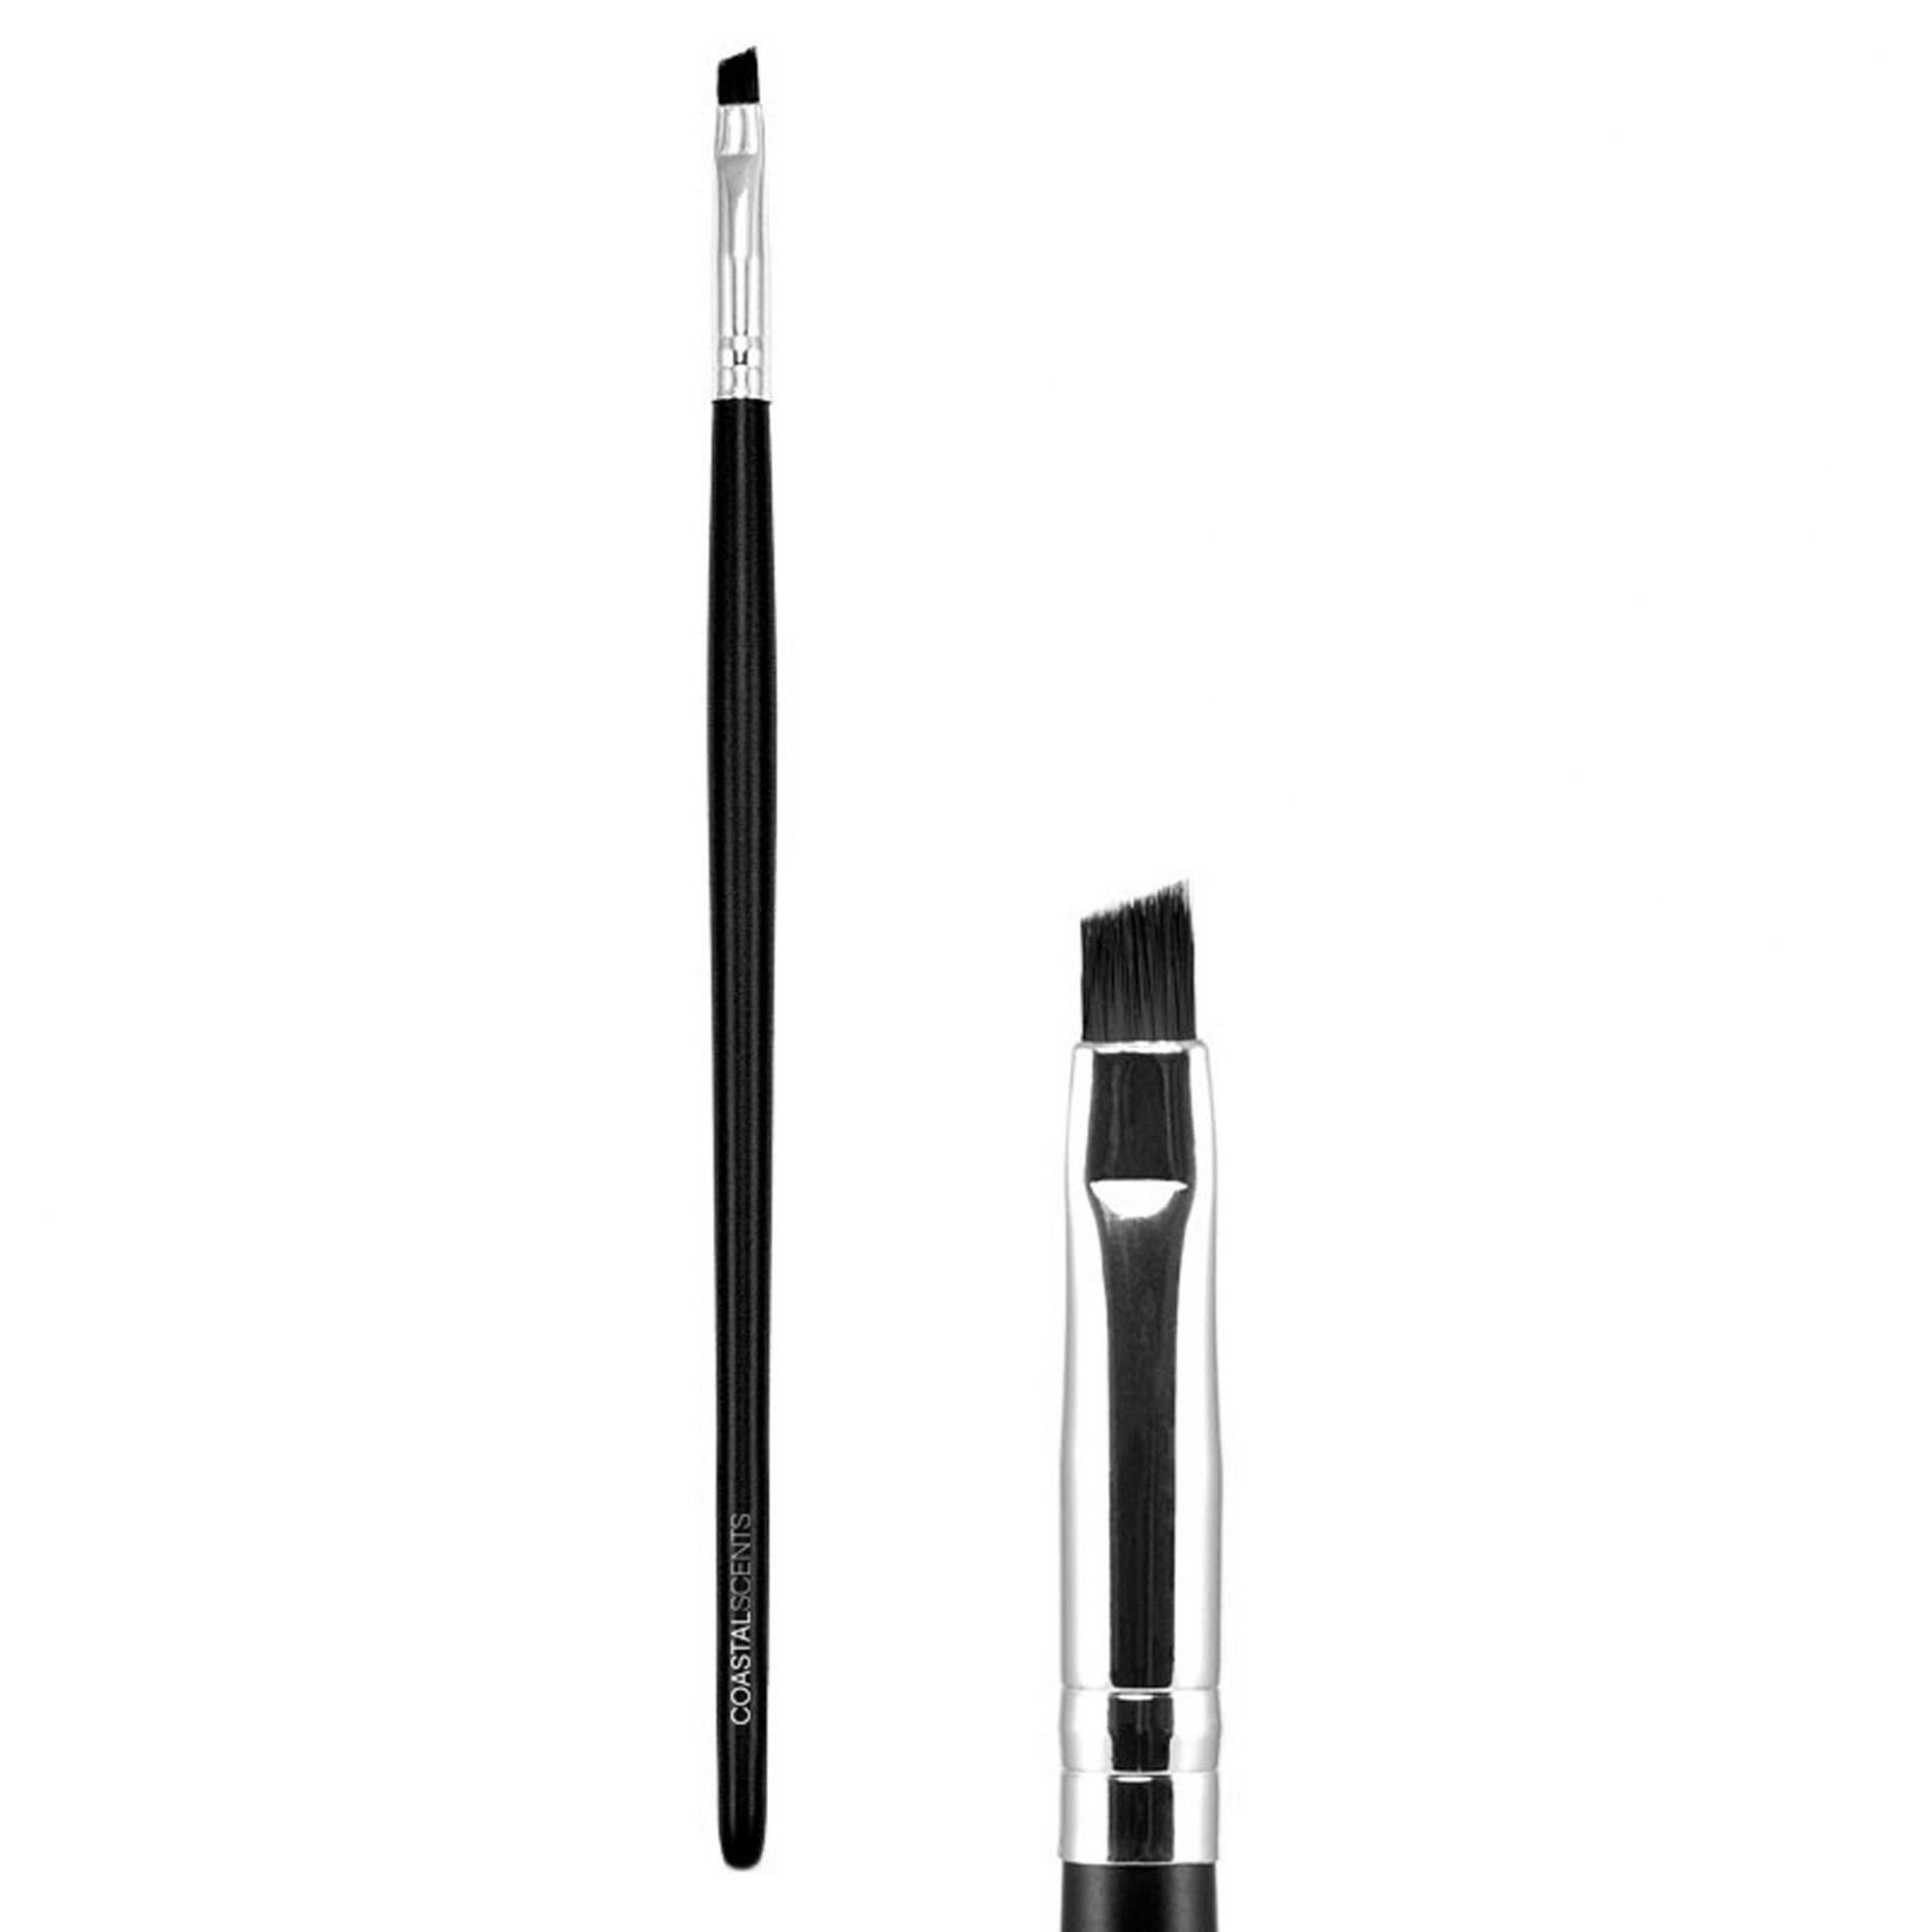 S17 ANGLEG LINER BRUSH SMAL | COASTAL SCENTS